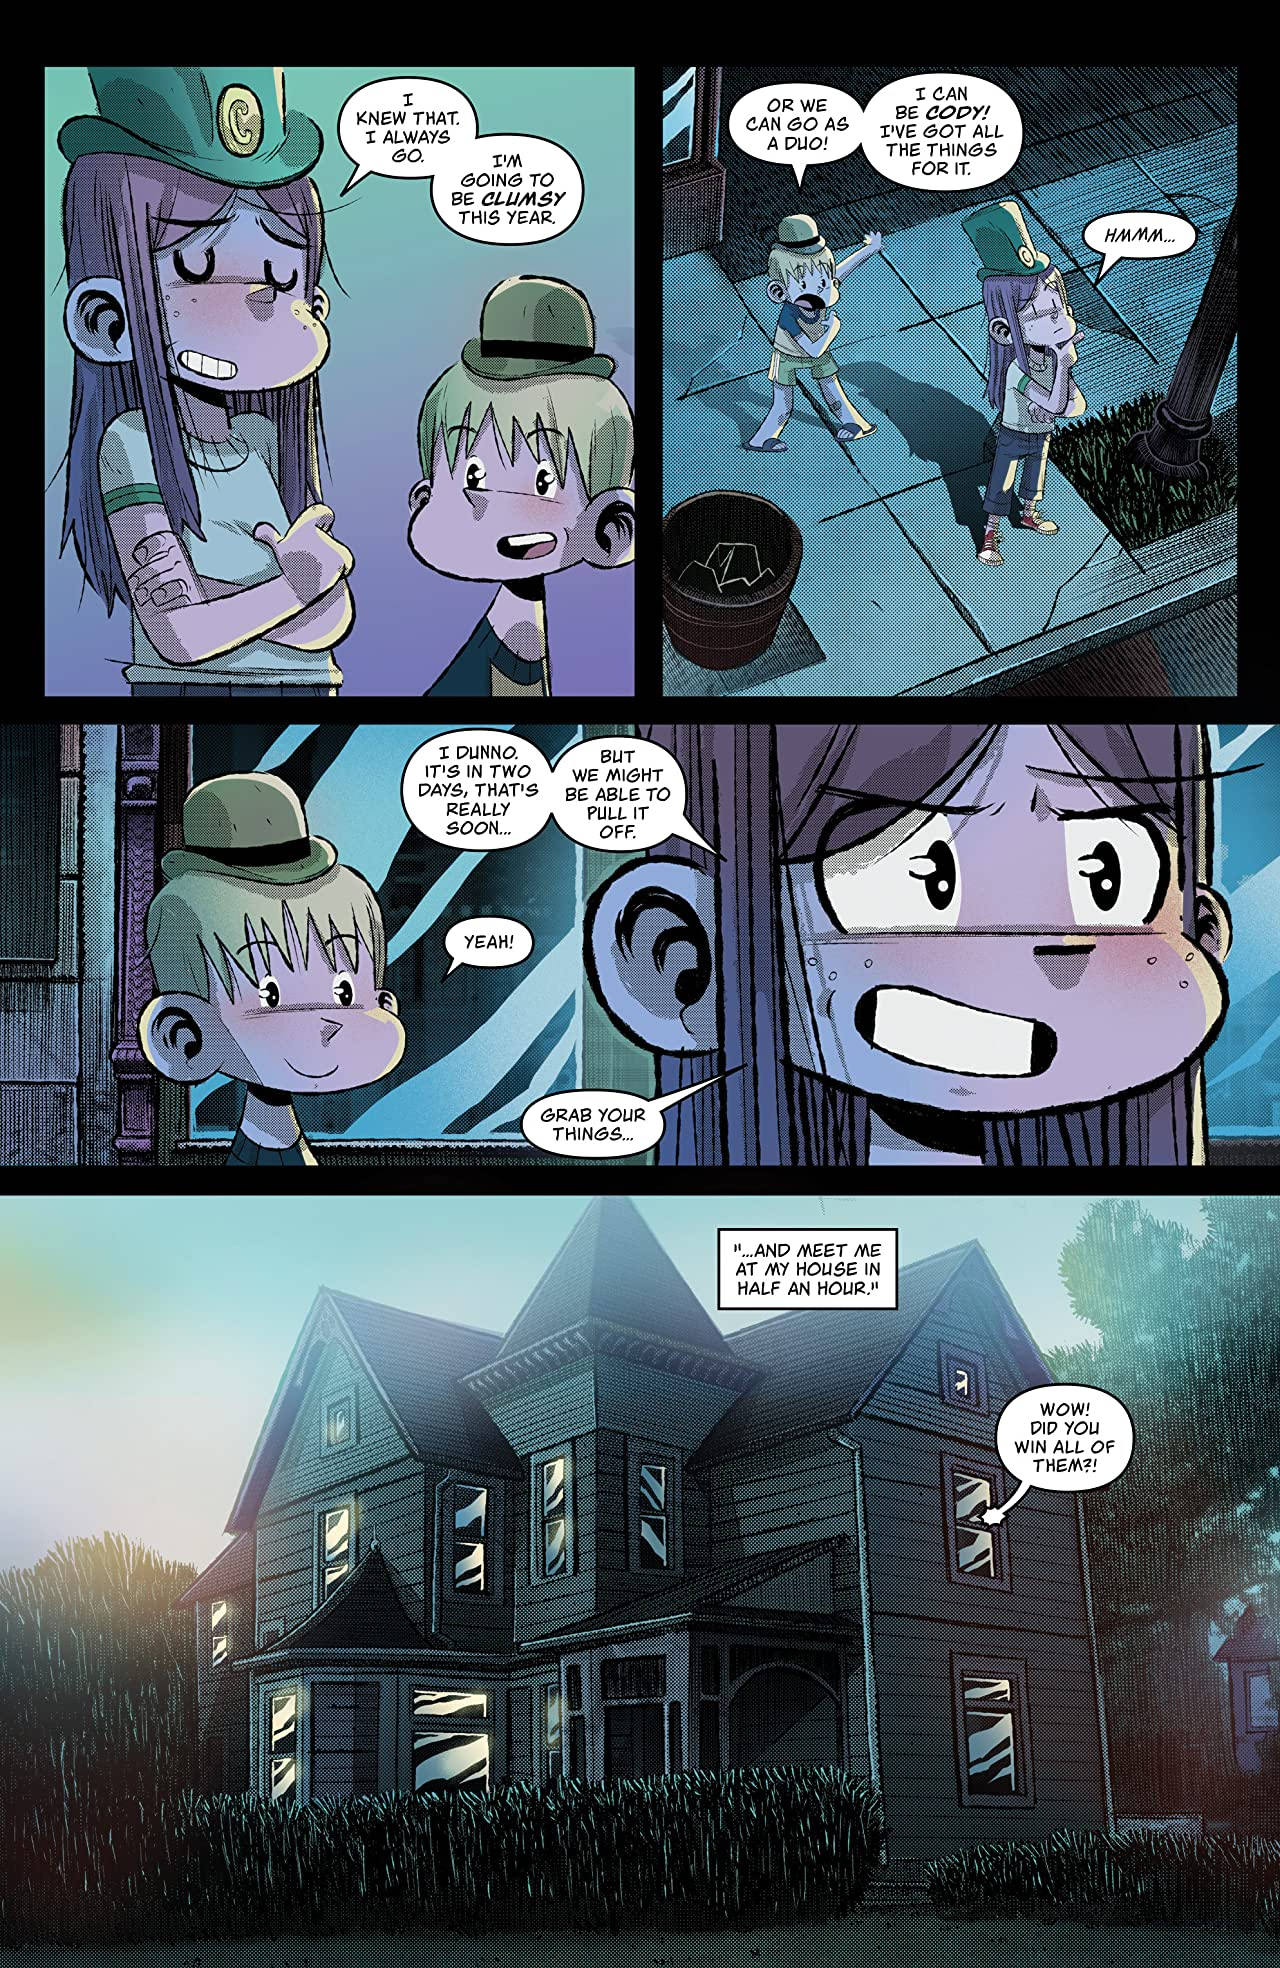 Funny Creek (comiXology Originals) #2 (of 5)